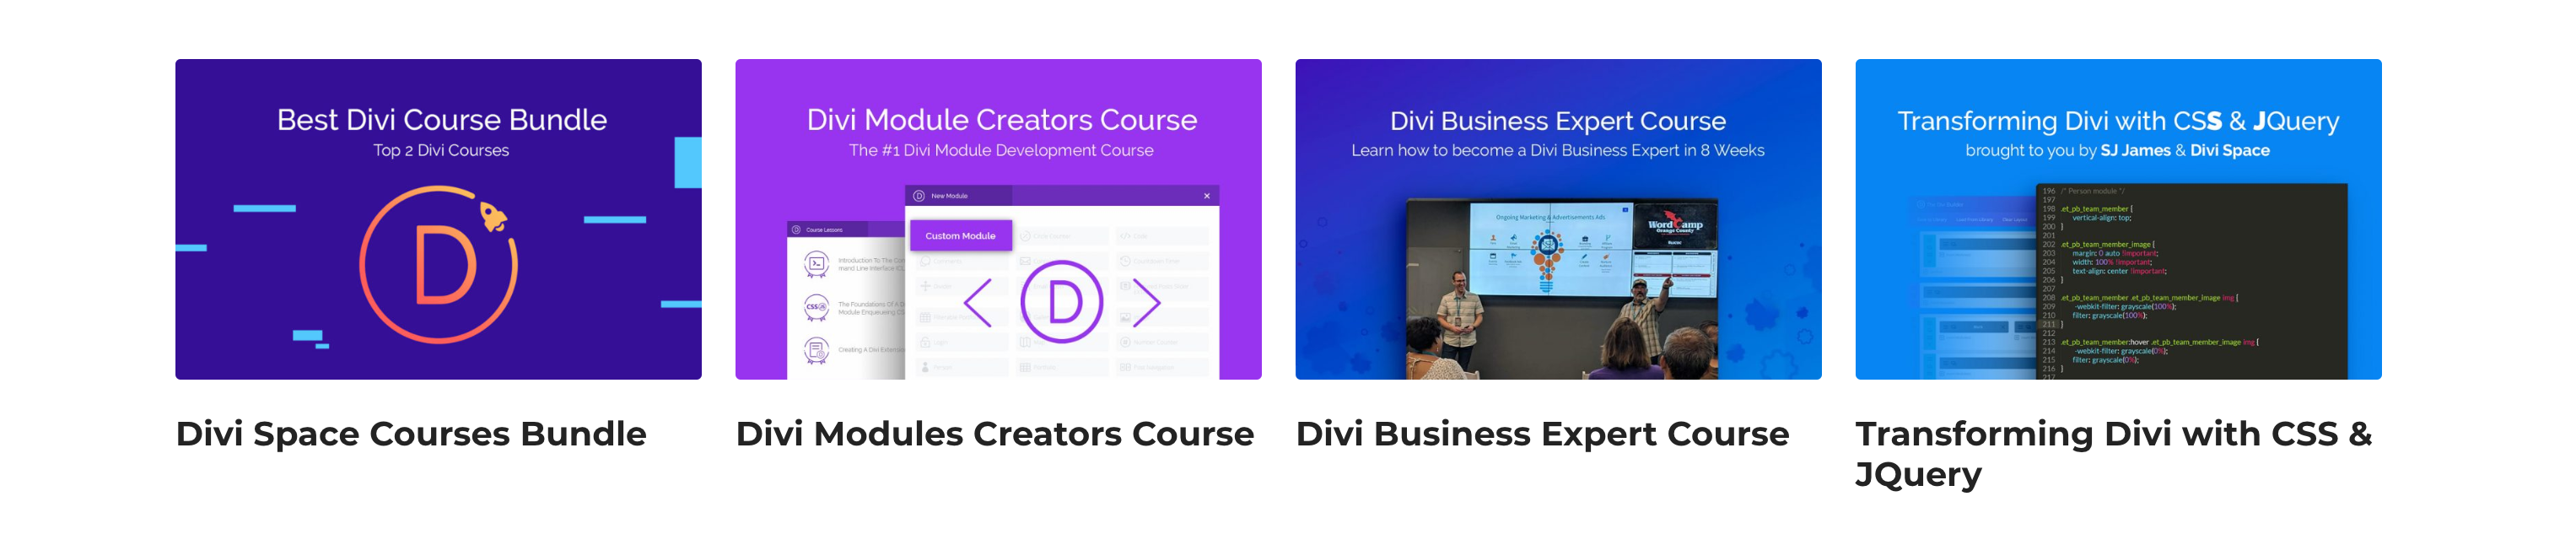 WordPress_and_Divi_Courses_-_Online_Courses_from_Beginner_to_Expert